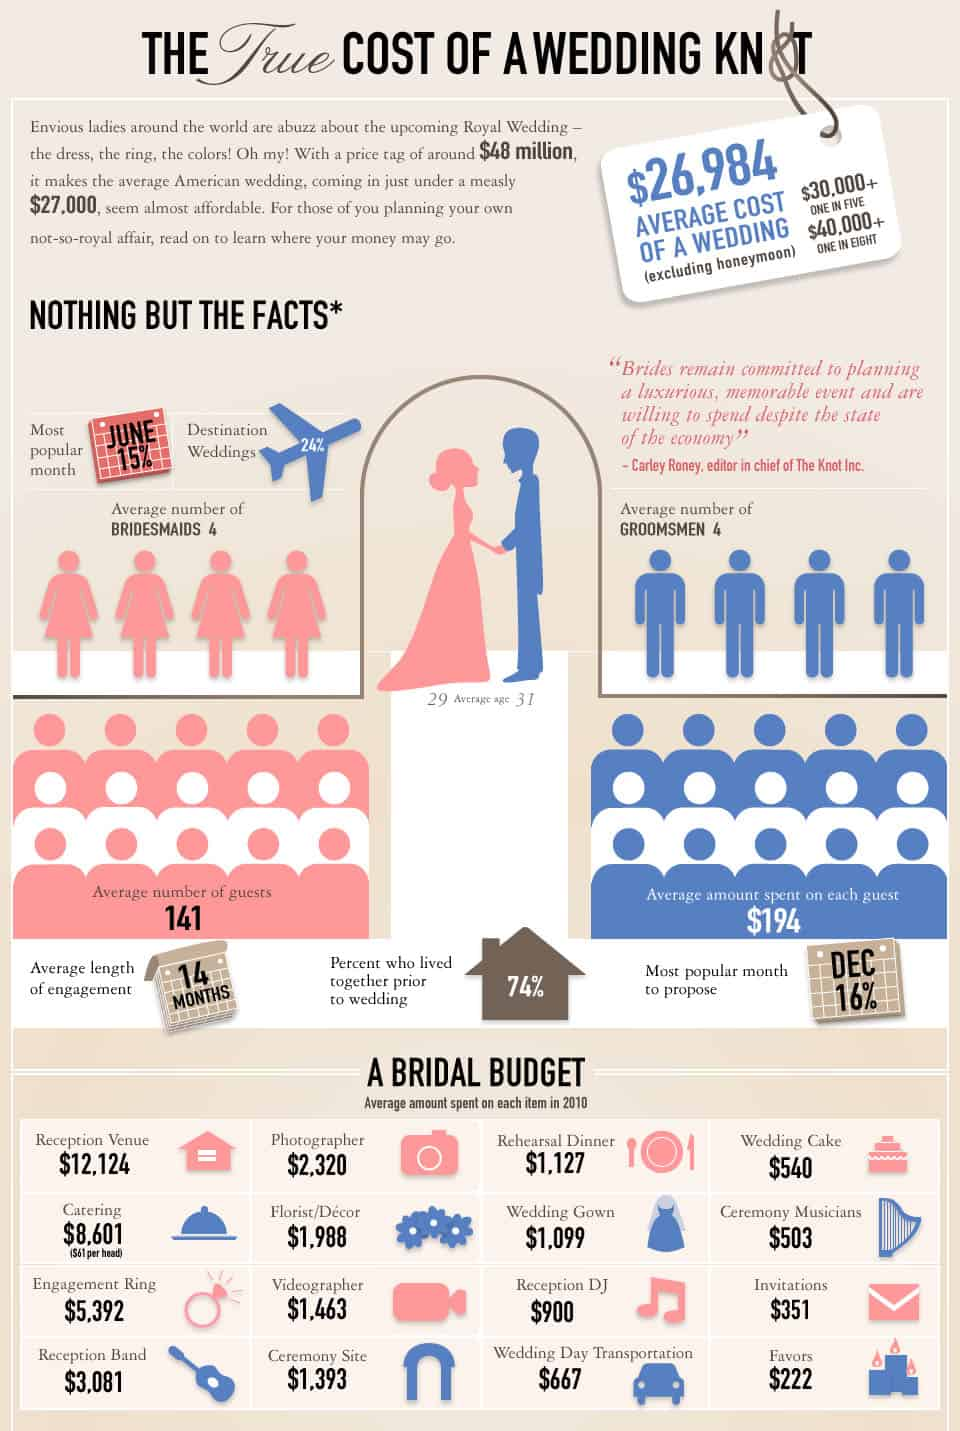 Average Wedding Gift Cost Uk : WEDDING-COST-wedding_infographic-copy.jpg